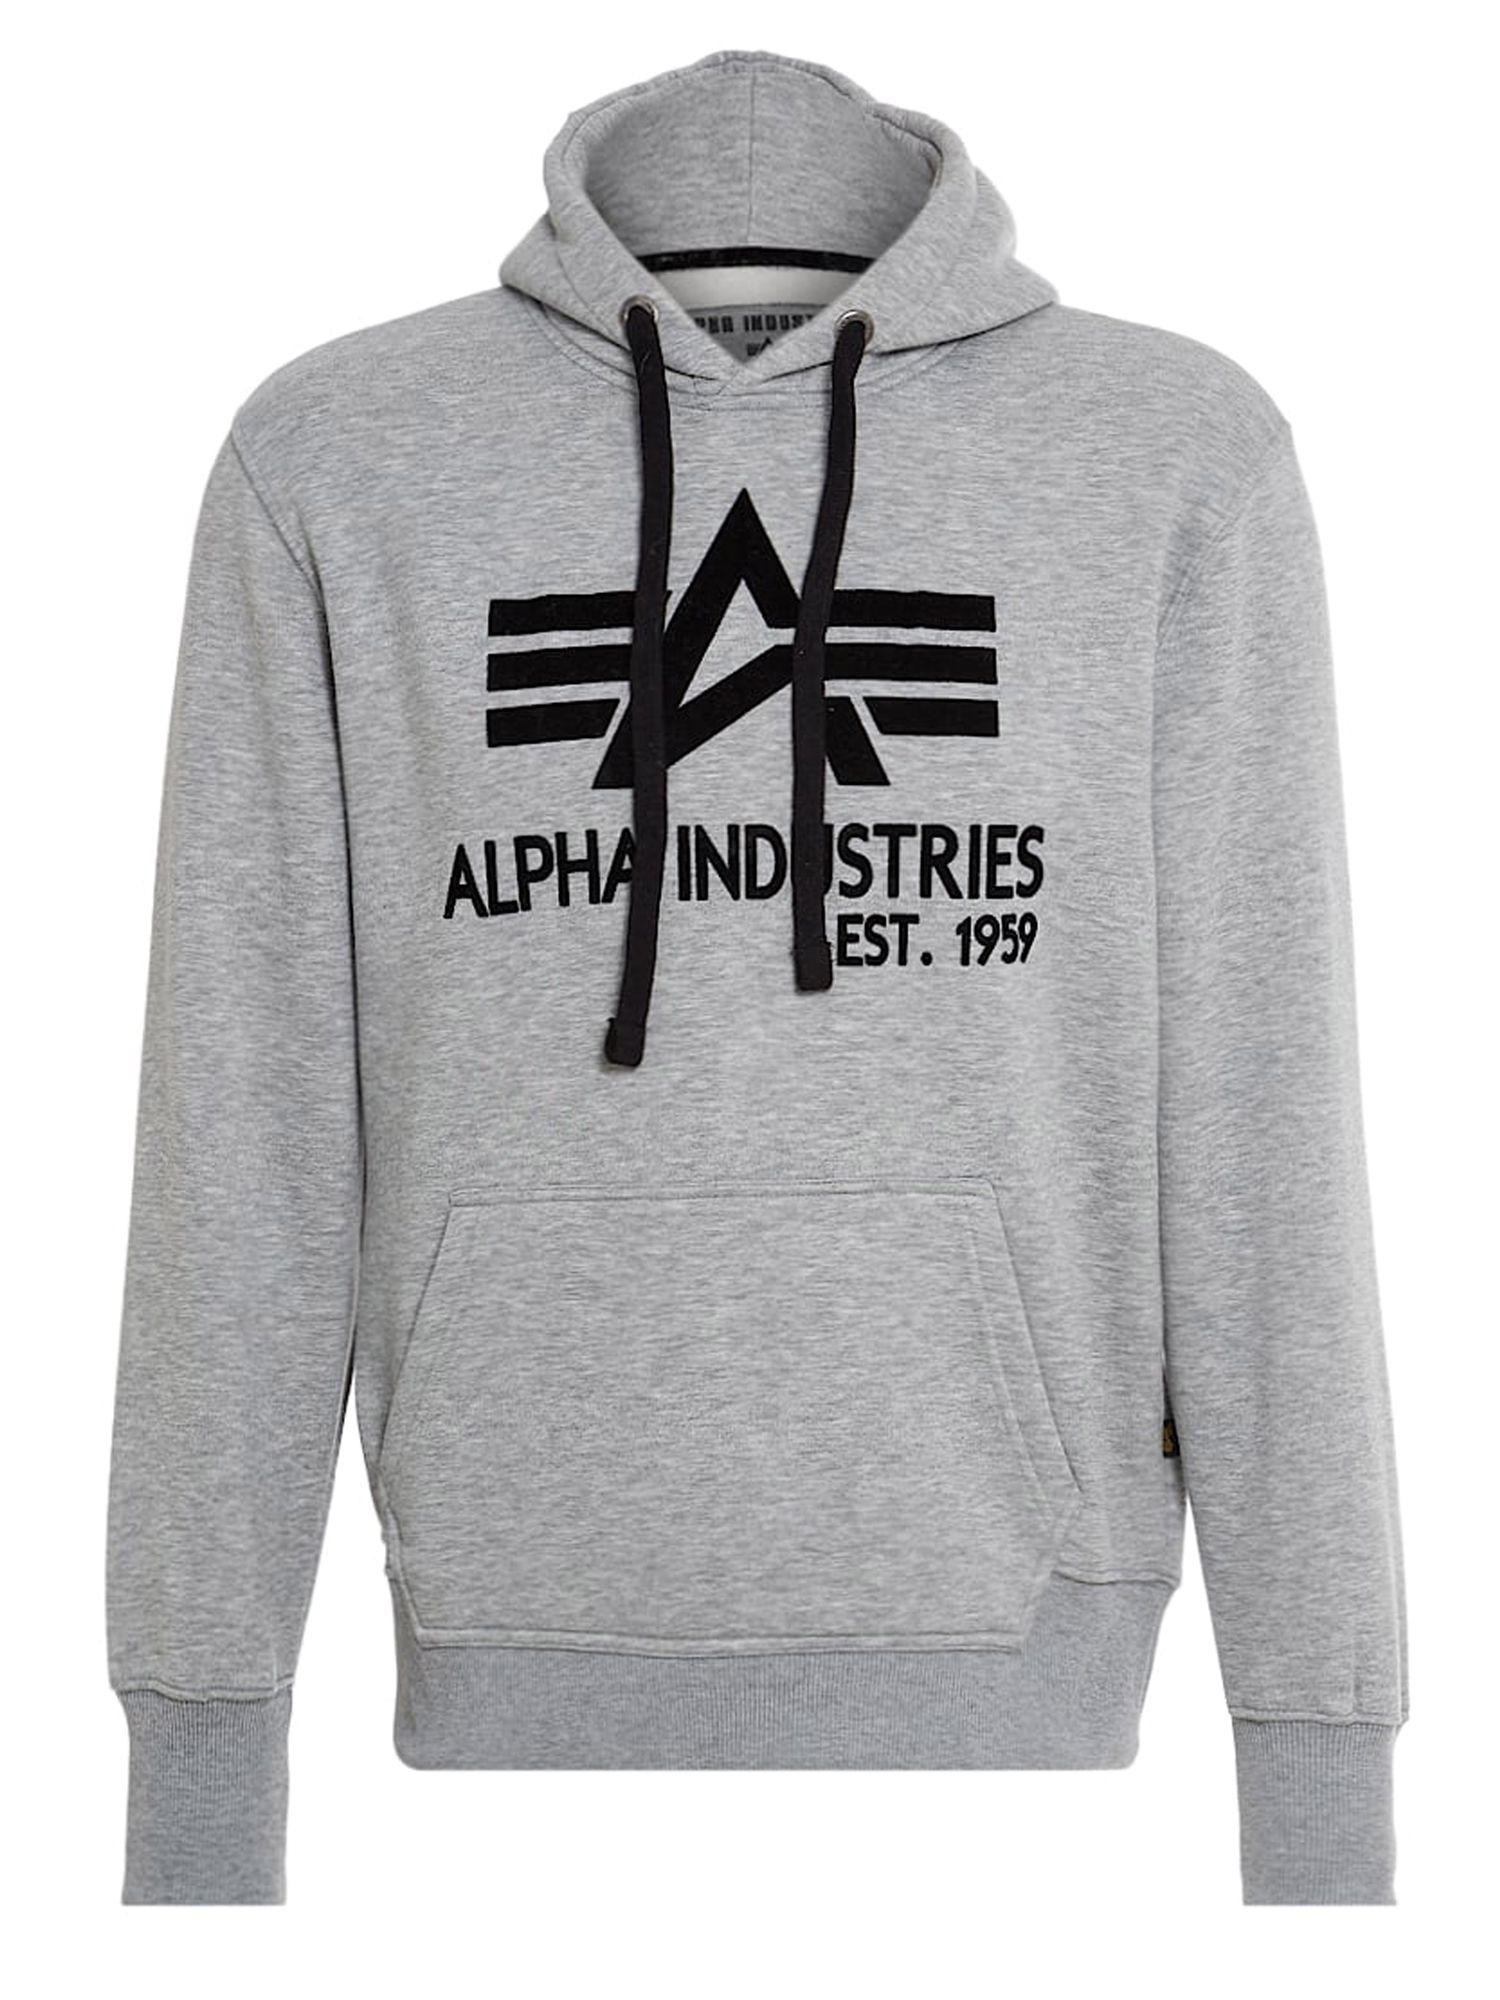 Alpha industries big a classic hoody in gray for men lyst for Quality classic house of fraser